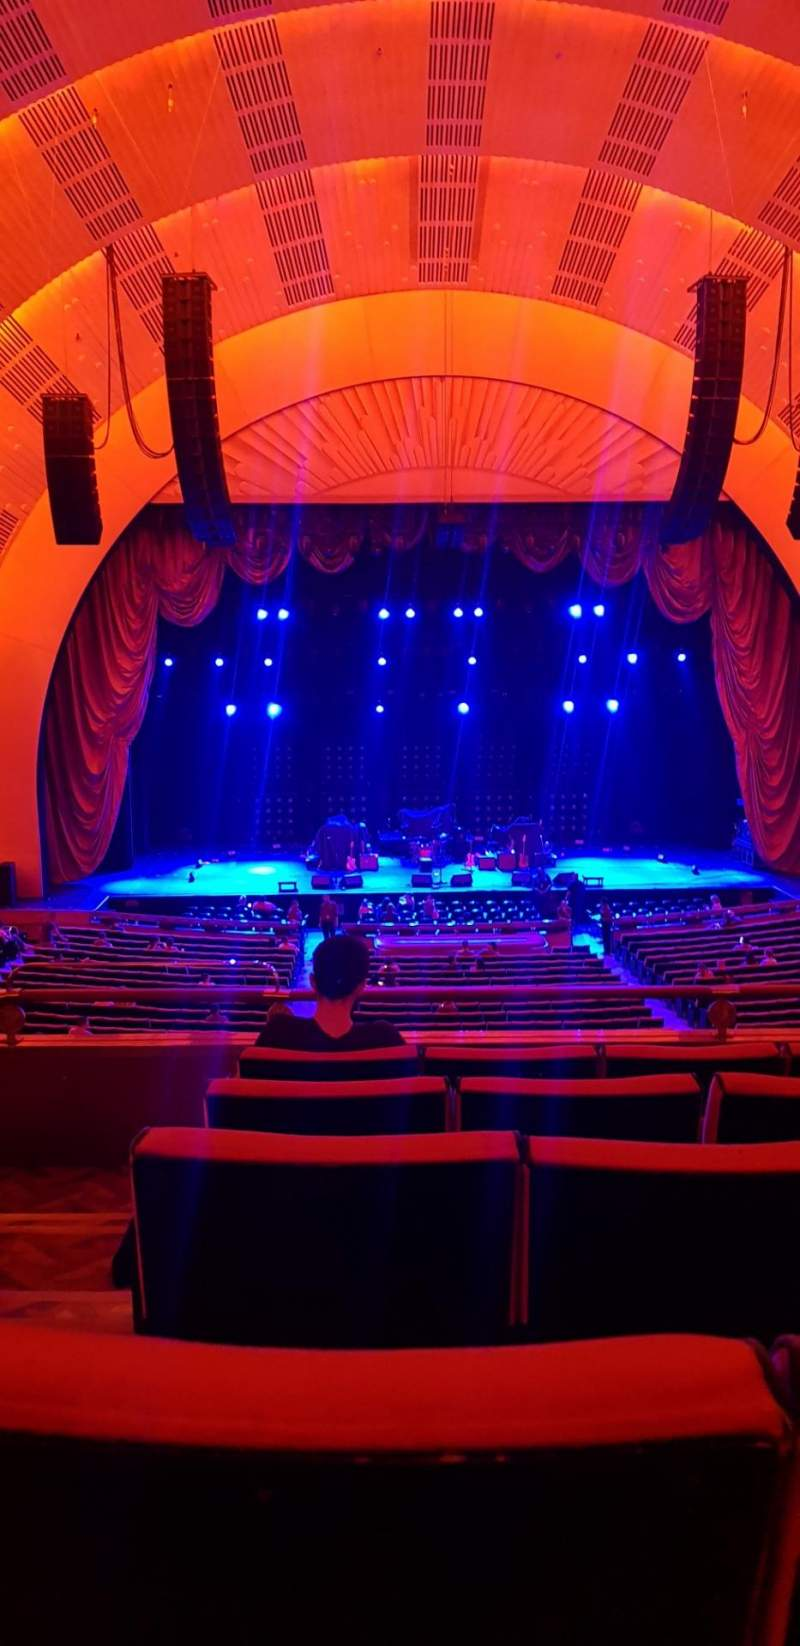 Seating view for Radio City Music Hall Section 1st mezzanine 4 Row E Seat 413